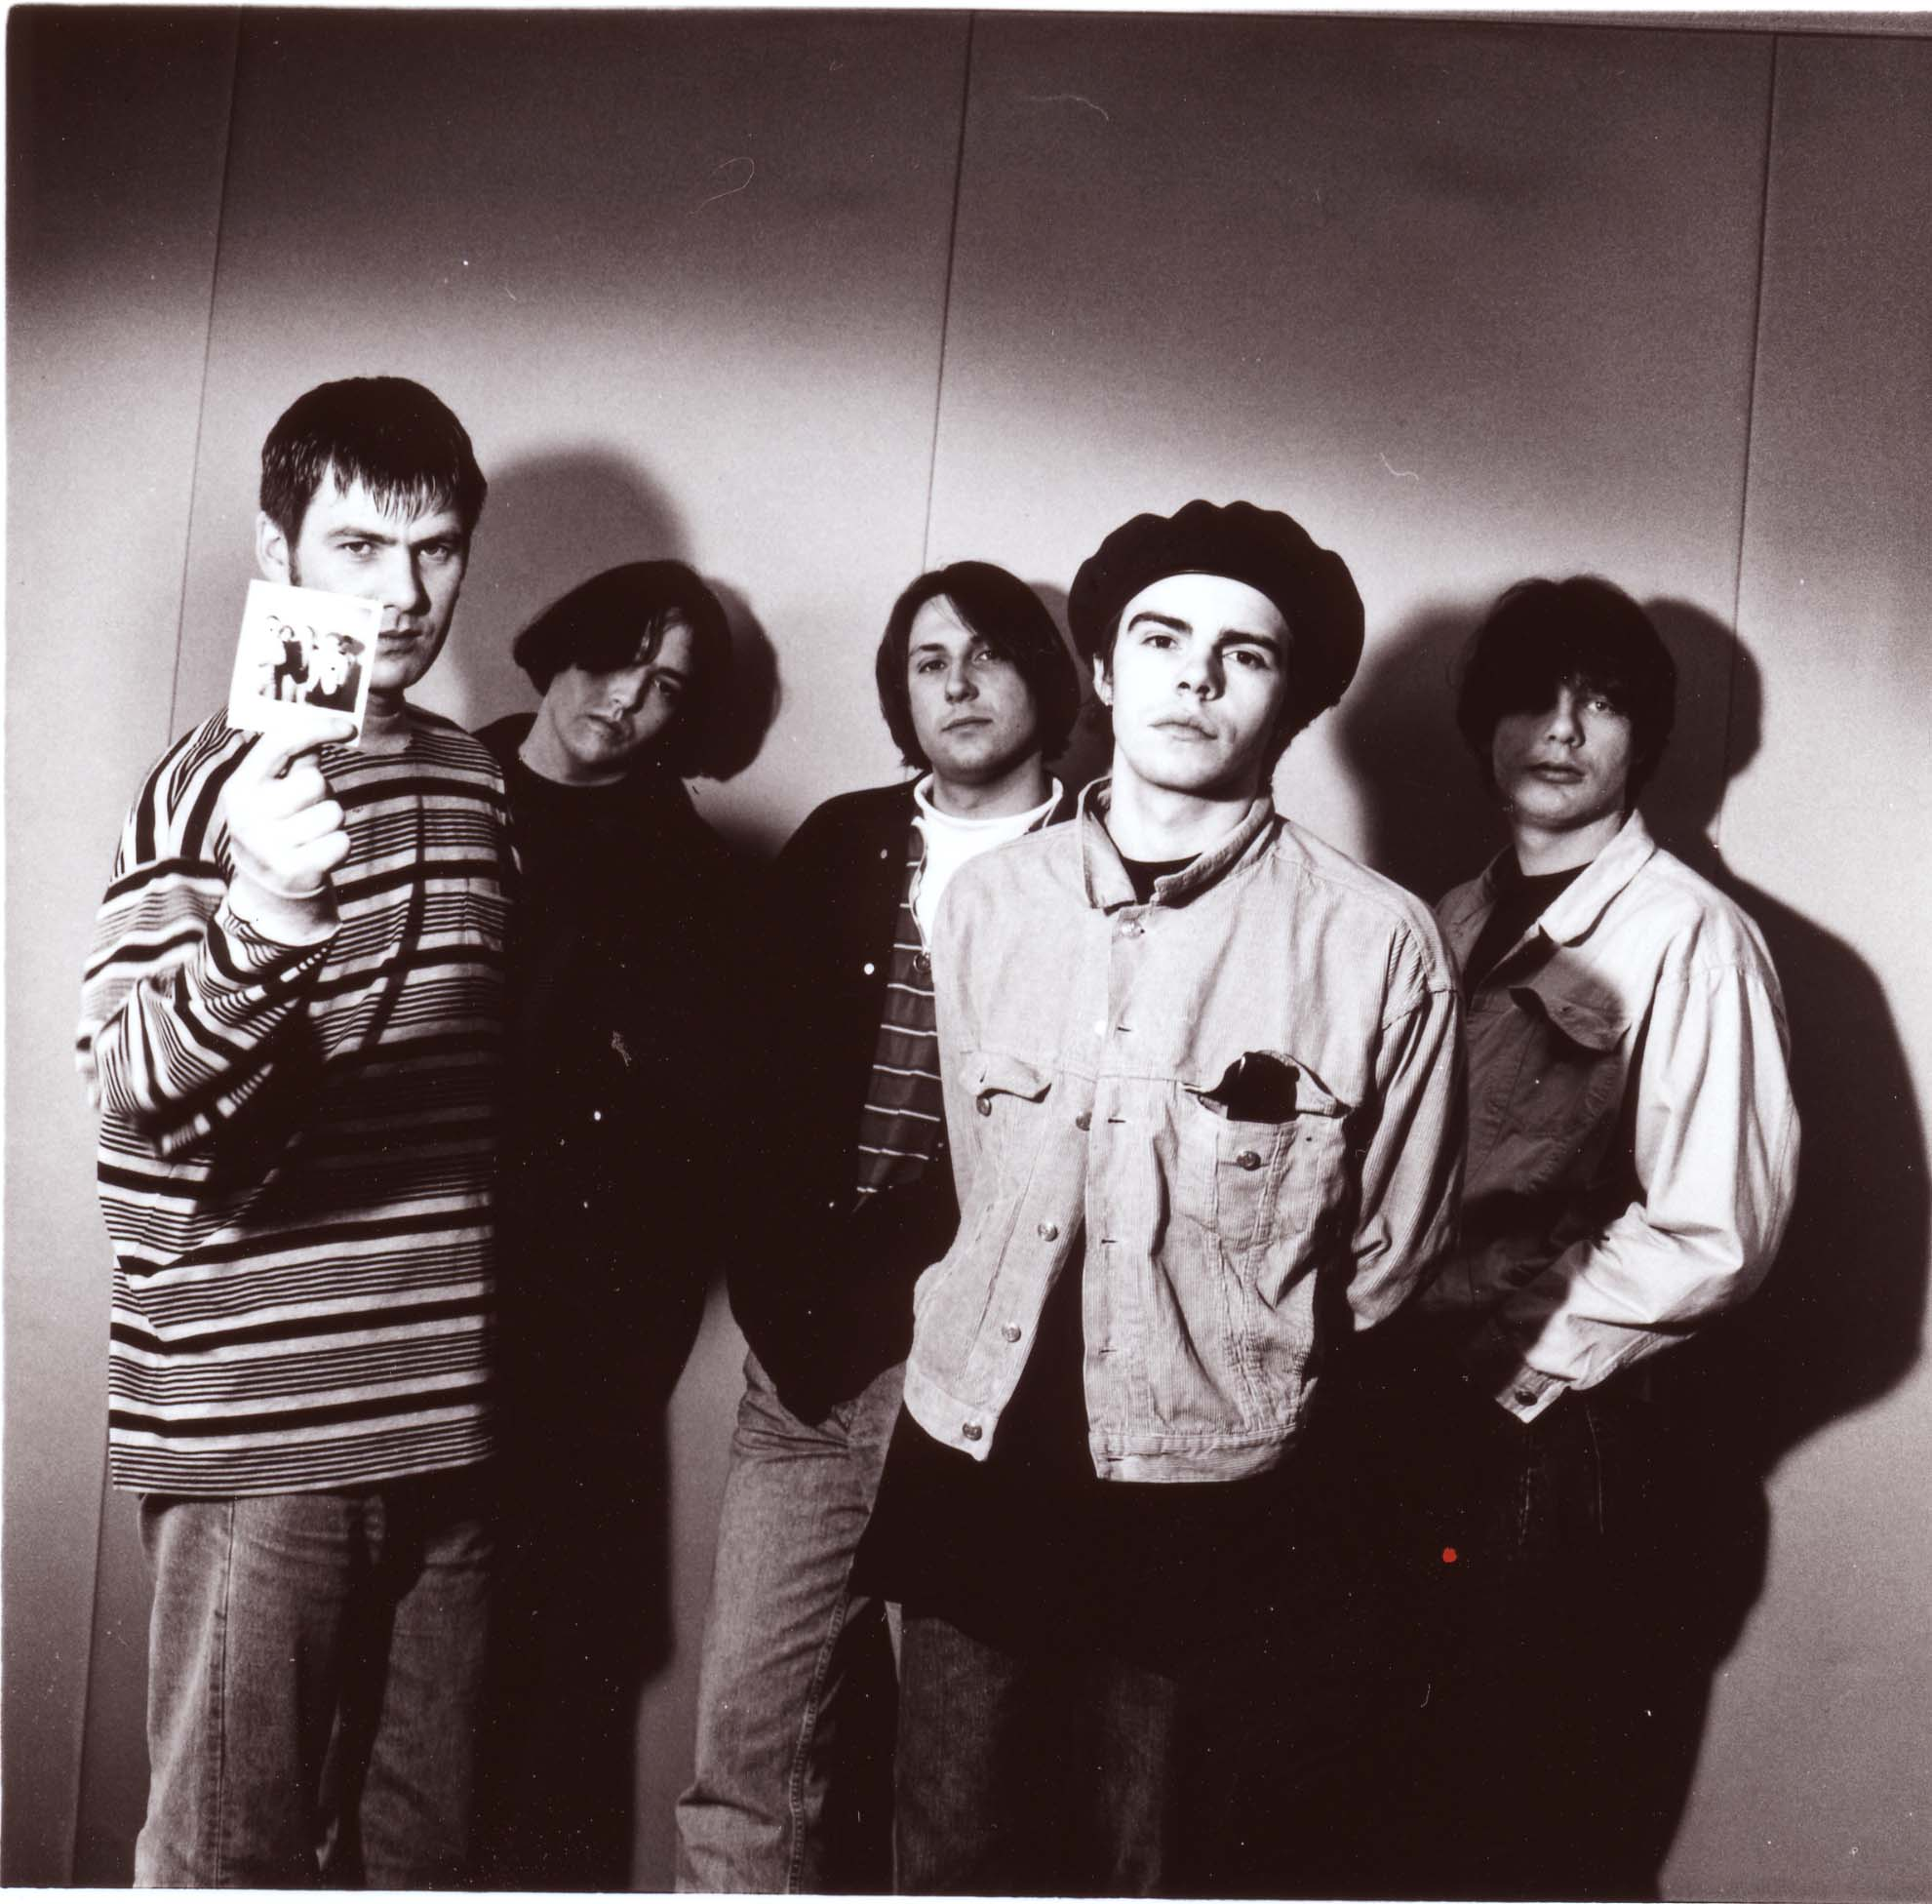 English: The Charlatans, UK Band